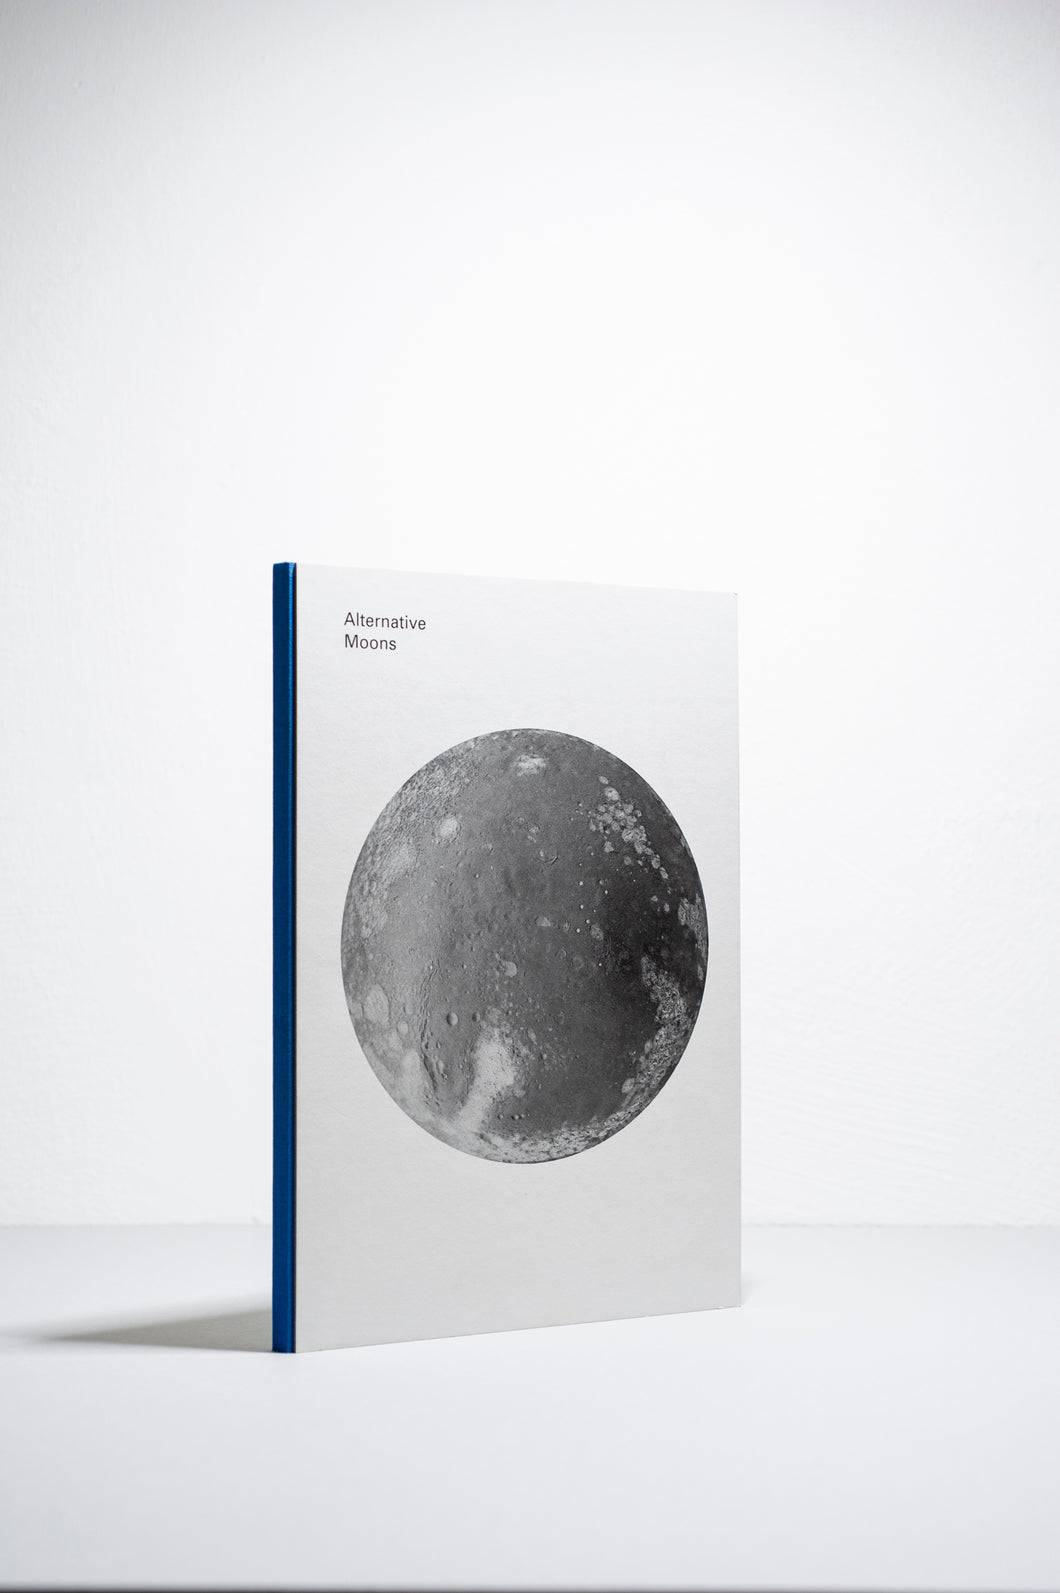 ALTERNATIVE MOONS / PUFLEB, SCHLIEPER